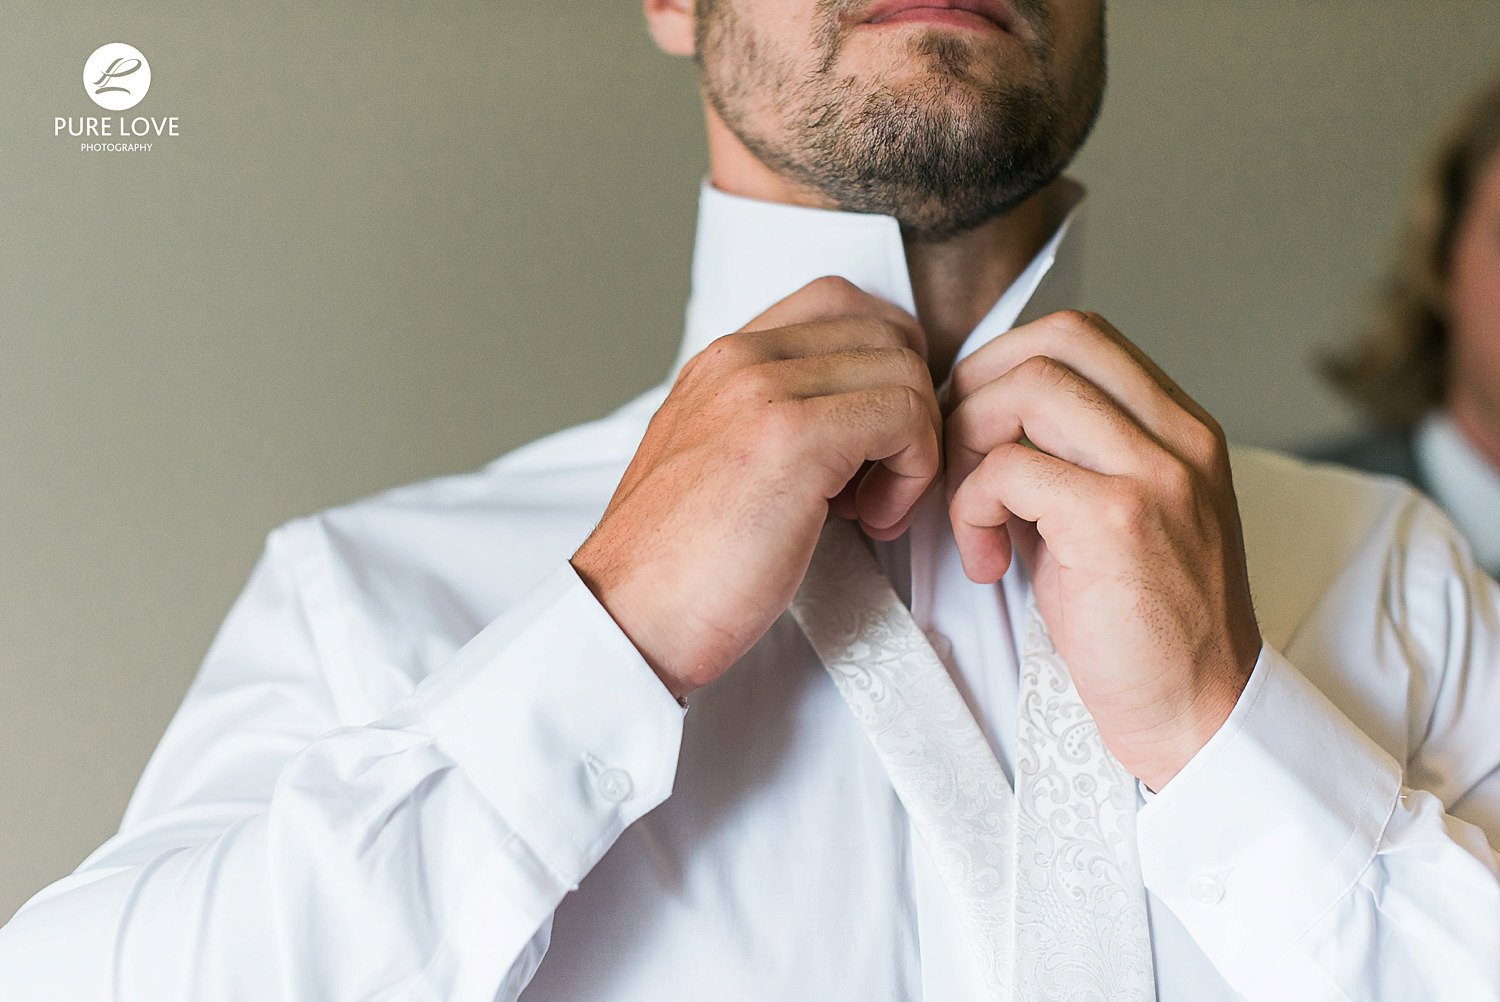 grrom getting ready, groom buttoning his shirt